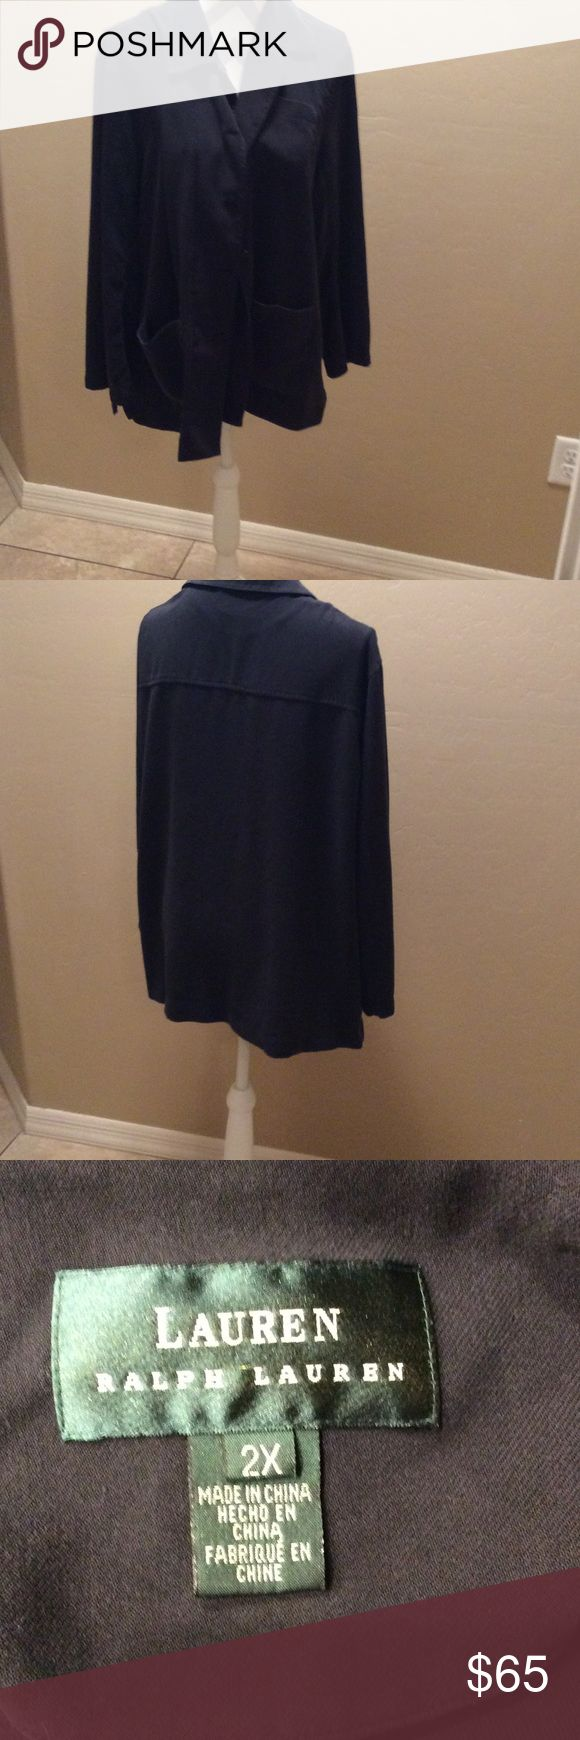 Ralph. Lauren  size 2x  100% silk black  jacket Like new this is a Rauph Lauren. Big pockets in front. Can be washed to clean it's a 100 % silk  so soft Ralph Lauren Jackets & Coats Blazers